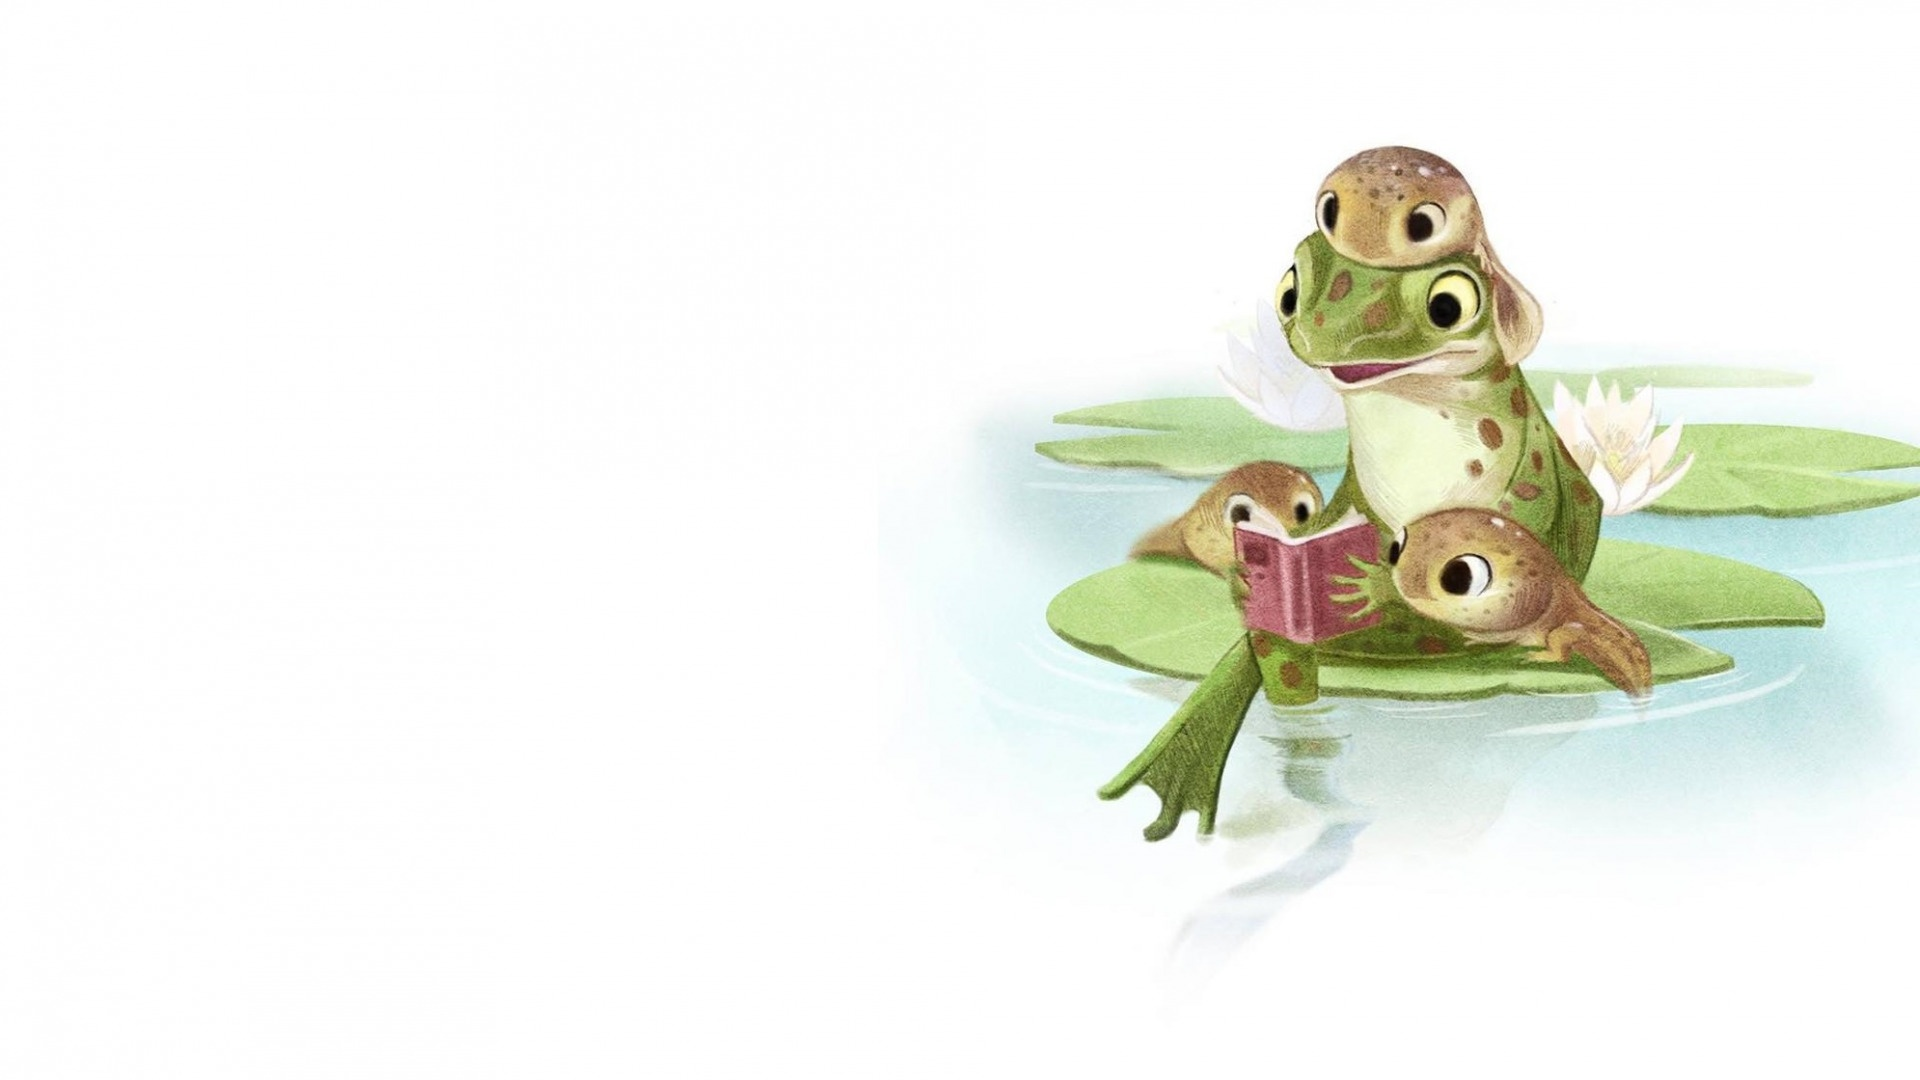 Cartoon Frog cool background